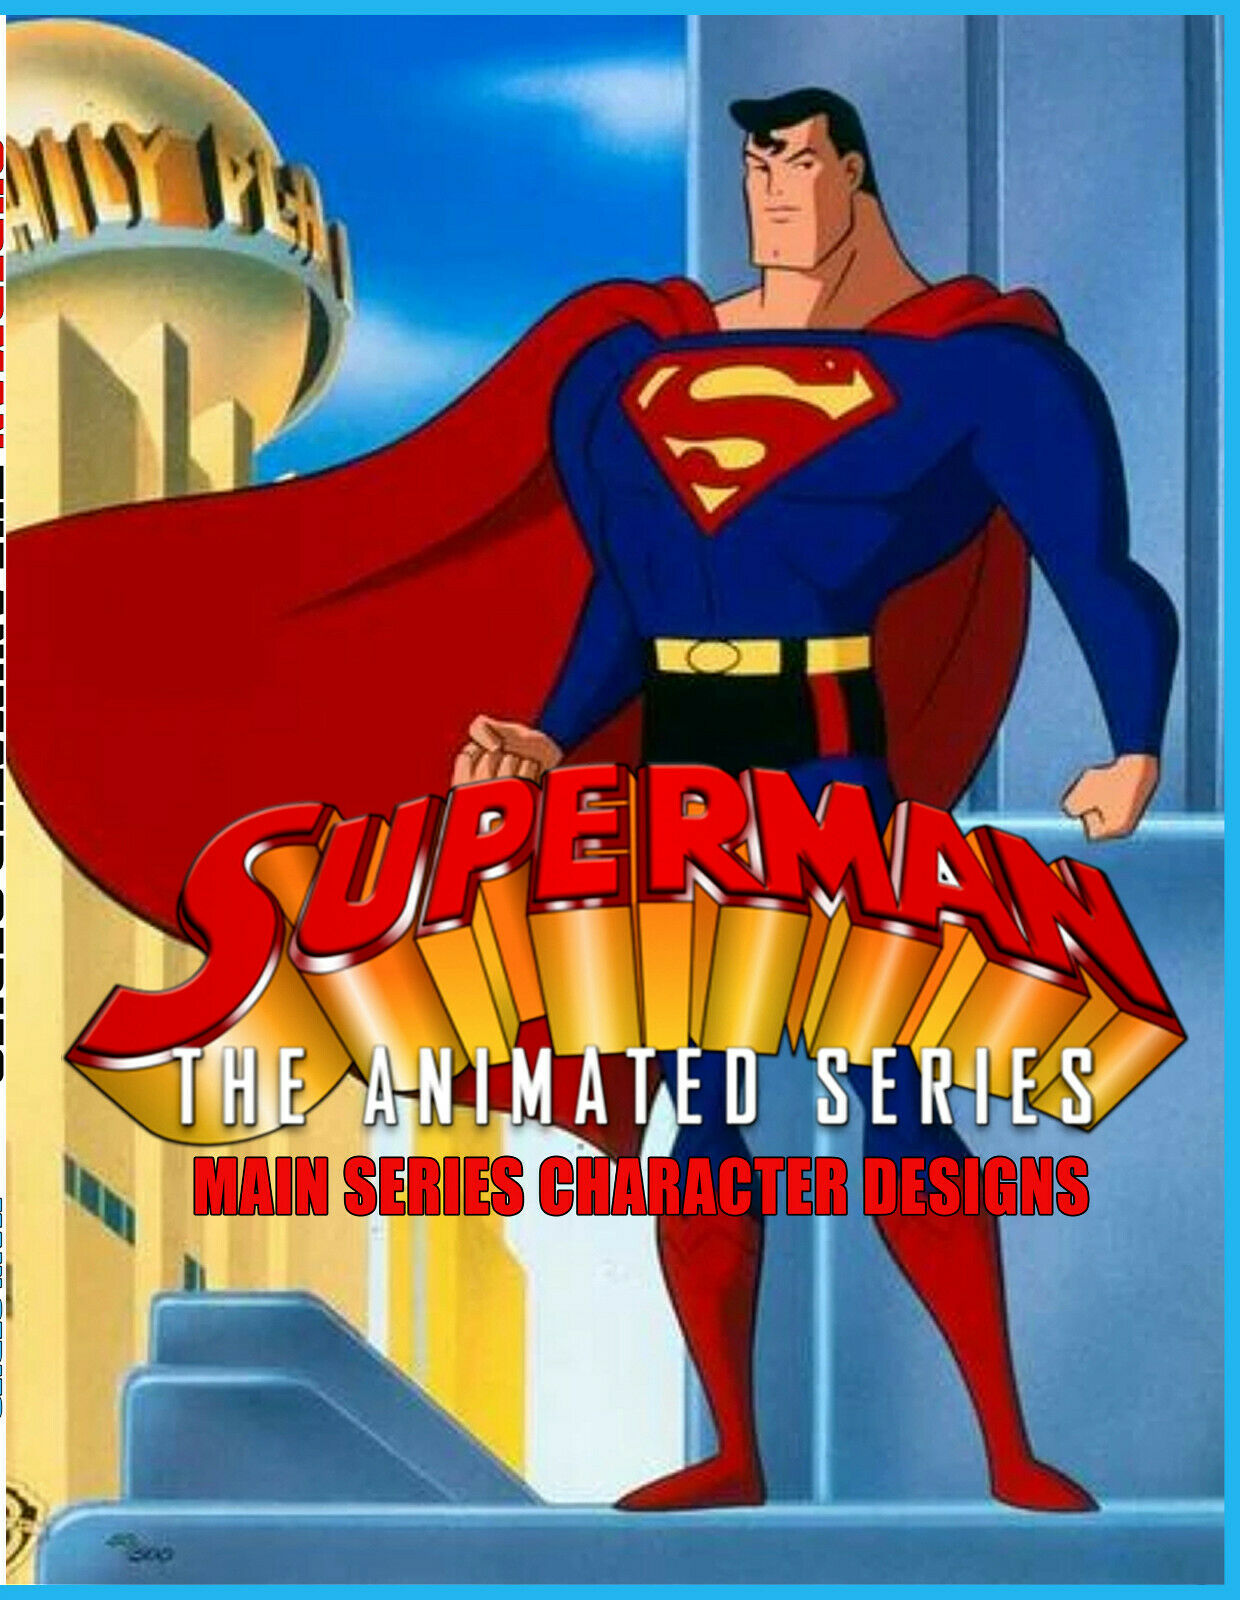 Warner Bros DC: - SUPERMAN THE ANIMATED SERIES - Style Guide/Model Sheets Book 8